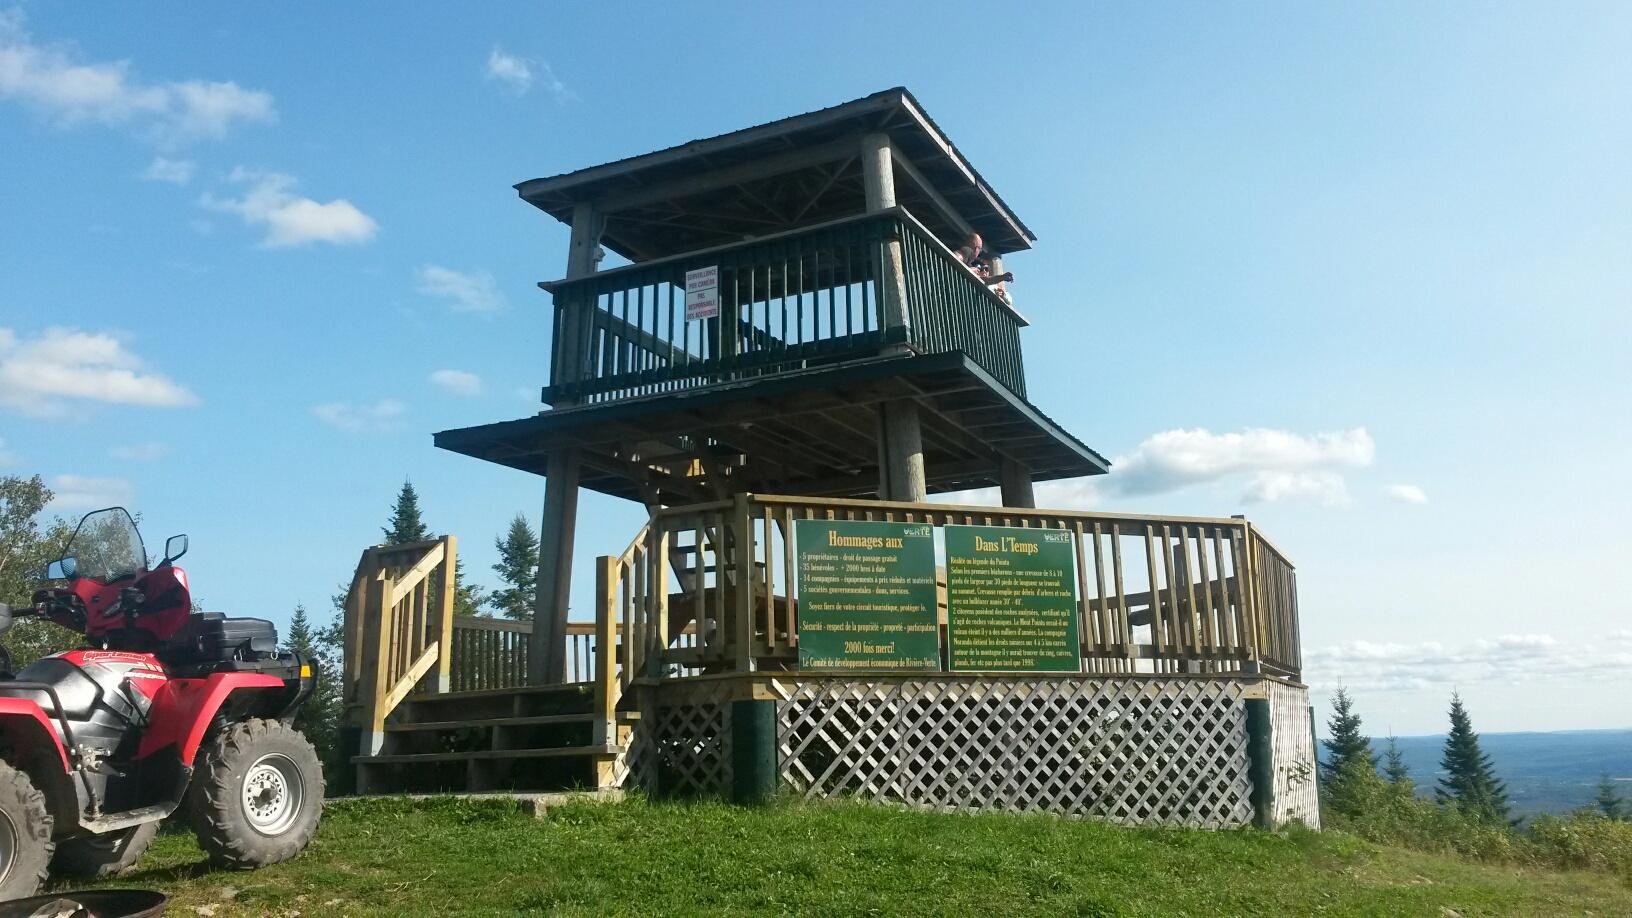 Lookout tower on Montagne des Therrien